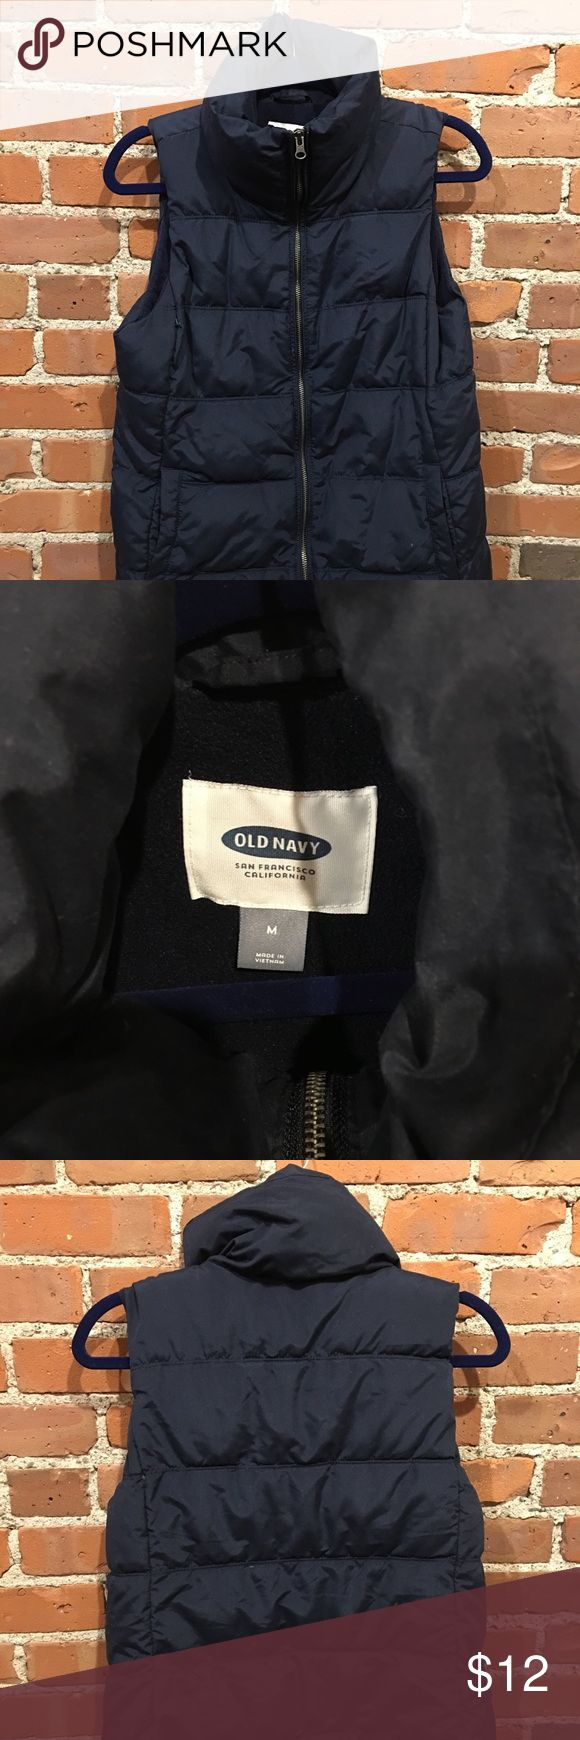 Cold weather navy blue vest Size M old navy cold weather vest. Only worn a few times, super warm, water resistant. Old Navy Jackets & Coats Vests